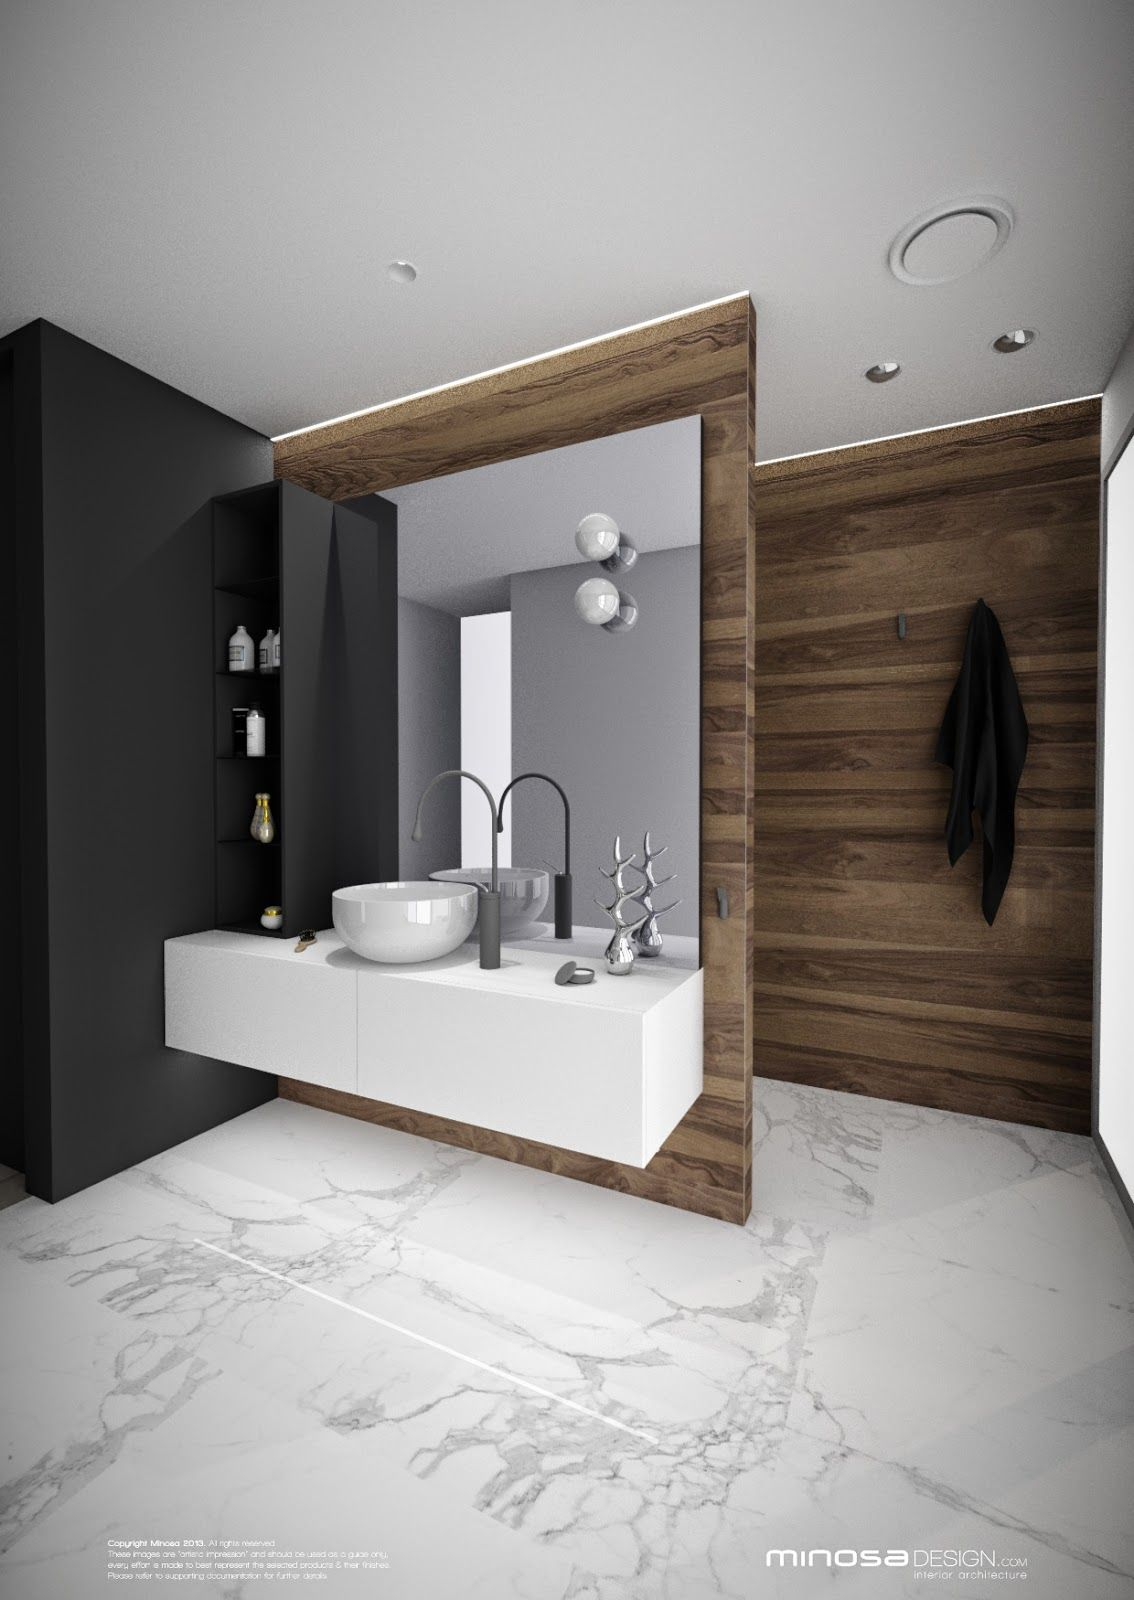 Bathroom renovation design ideas want to build this for Toilet bathroom design